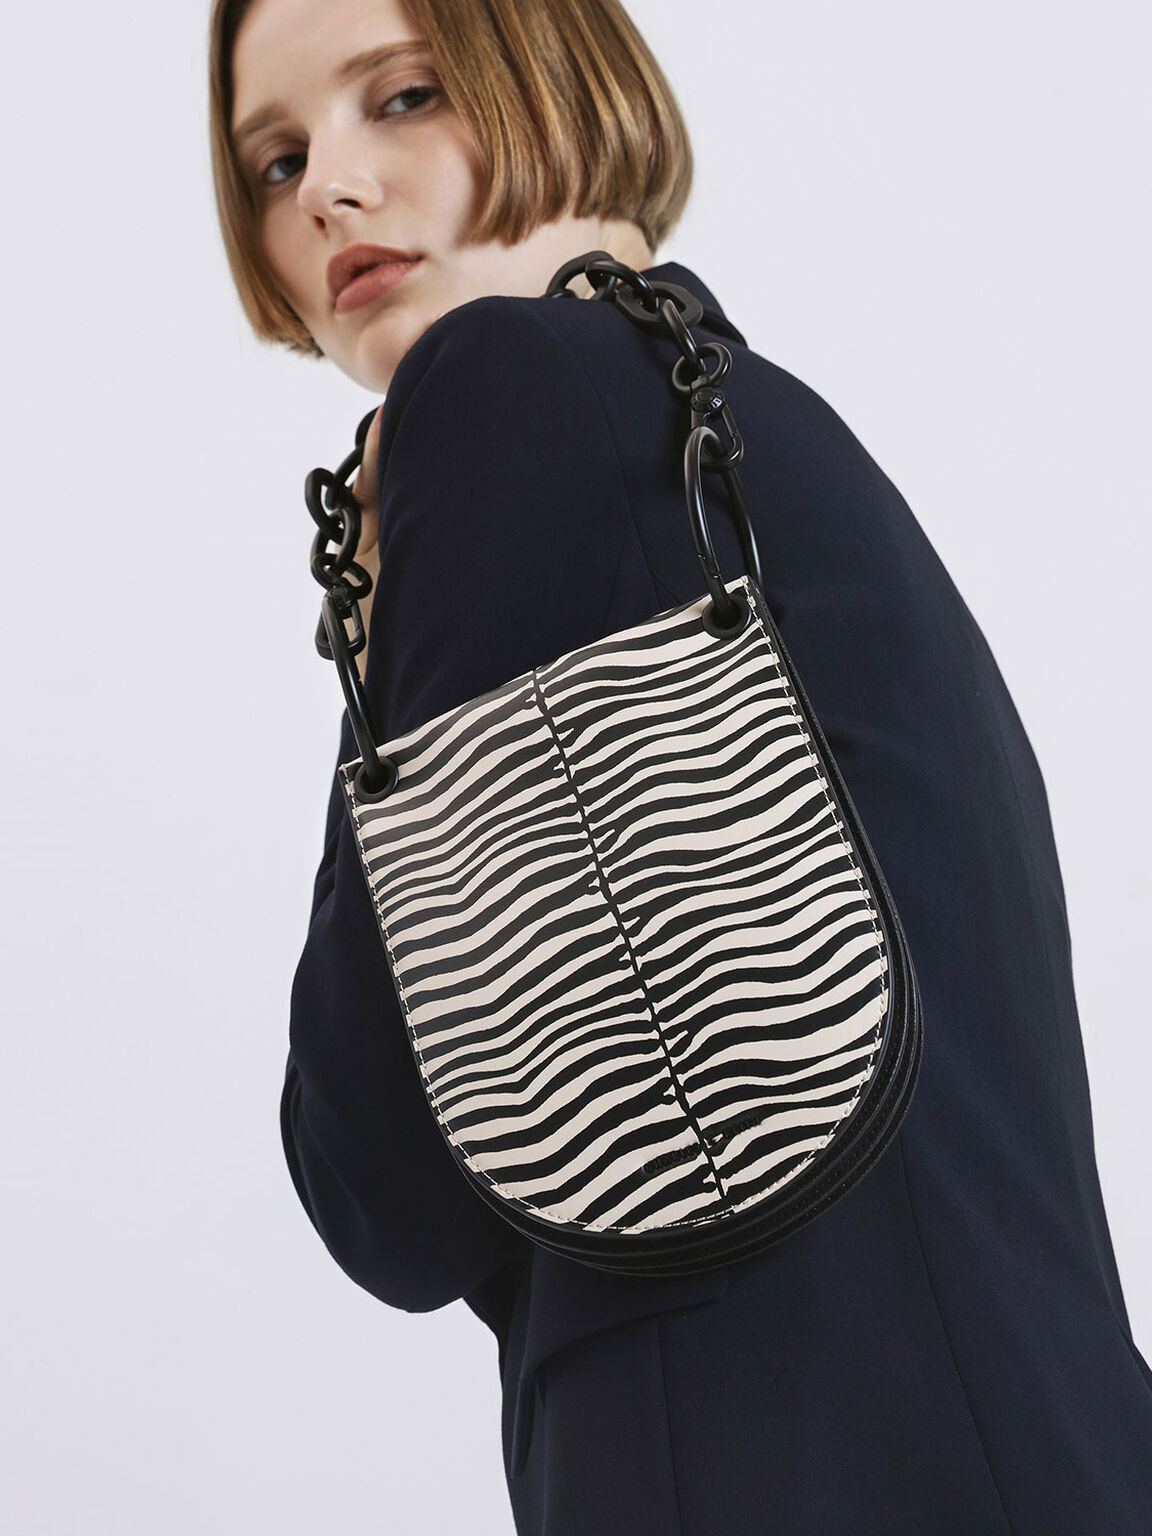 Zebra Print Chunky Chain Handle U-Shaped Bag, Multi, hi-res